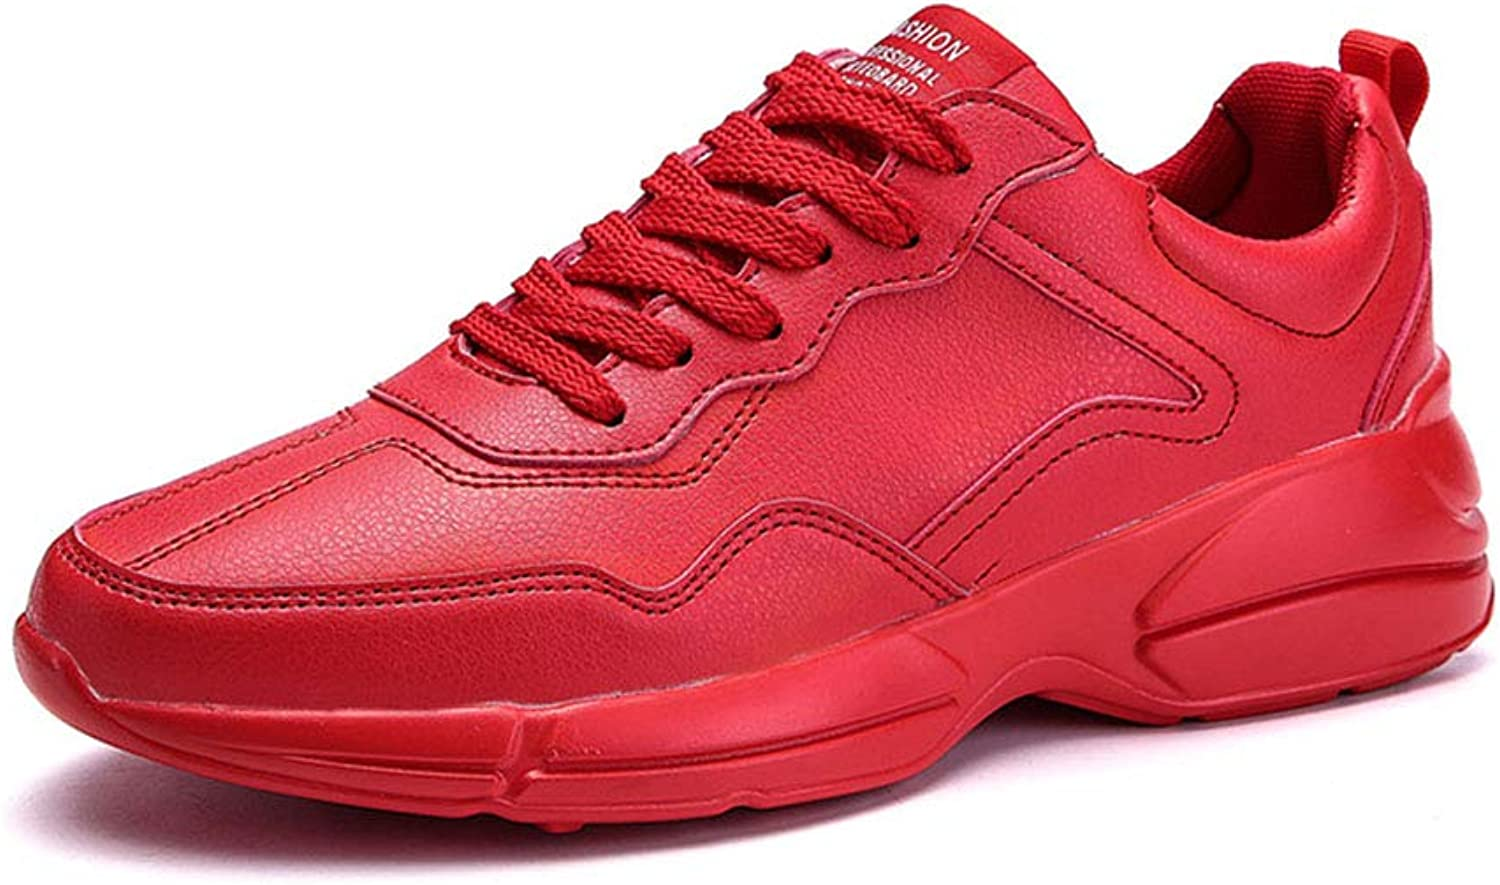 Casual shoes Men's shoes, Sports Wind Fashion Wild Academy Running shoes Spring Fall New Lace-up shoes